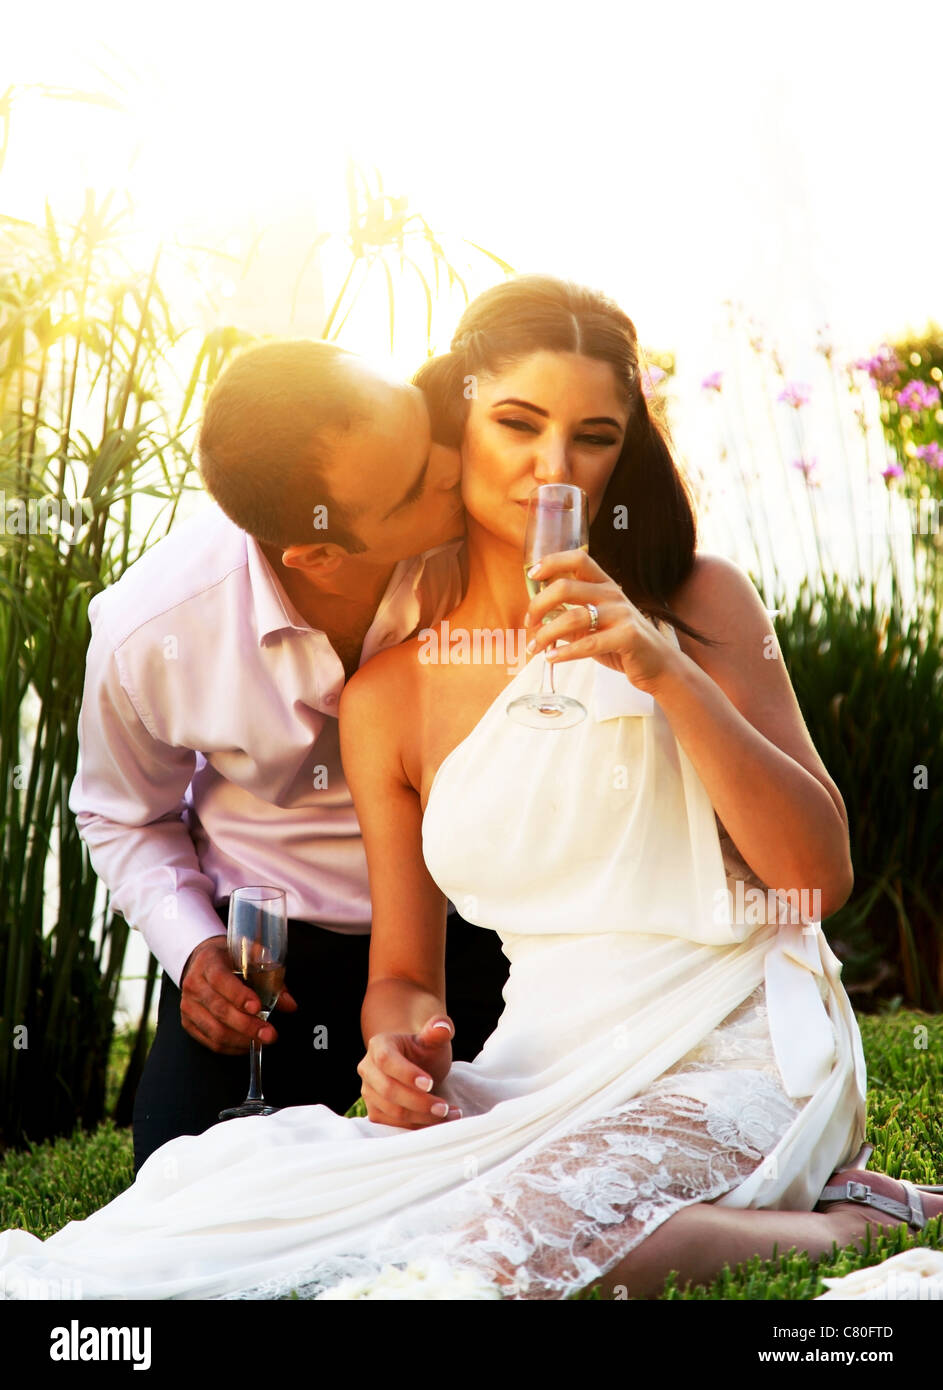 Happy young couple kissing outdoors, wedding day - Stock Image